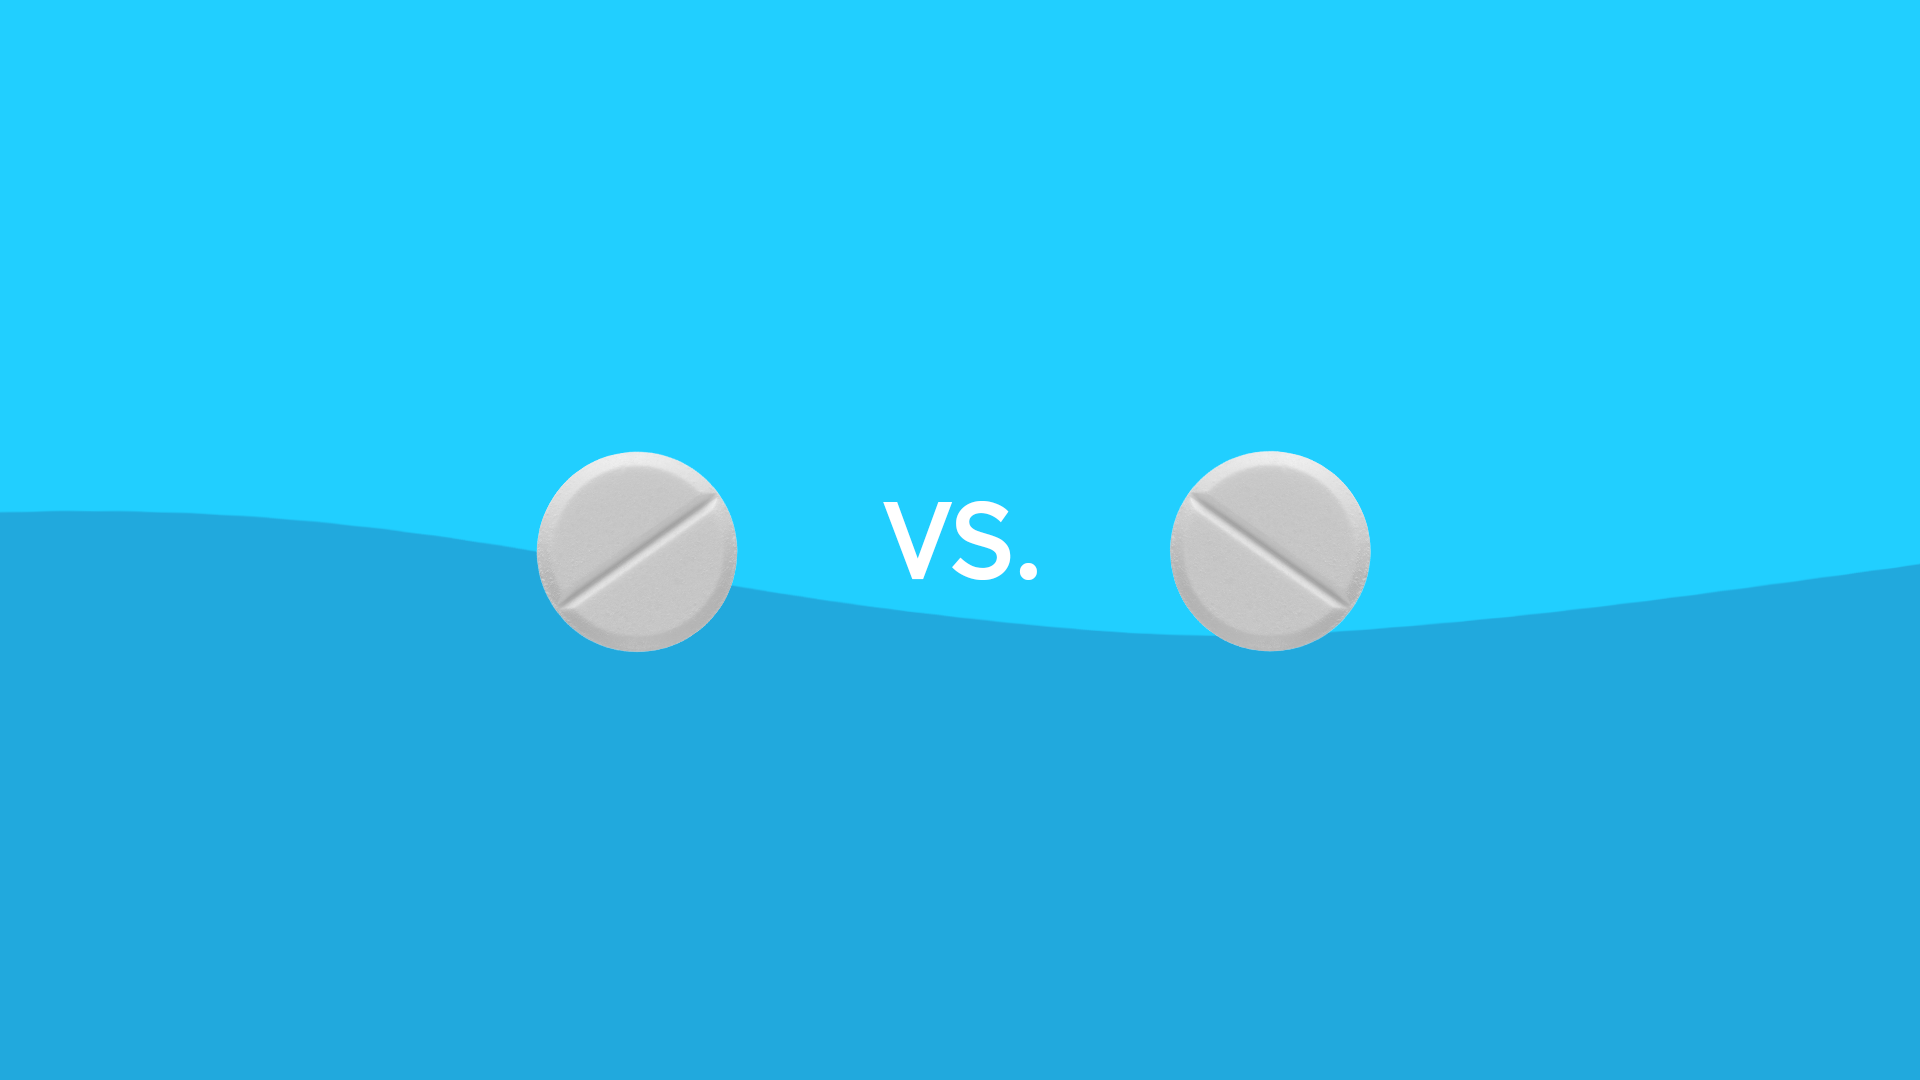 Valium vs. Ativan: Differences, similarities, and which is better for you